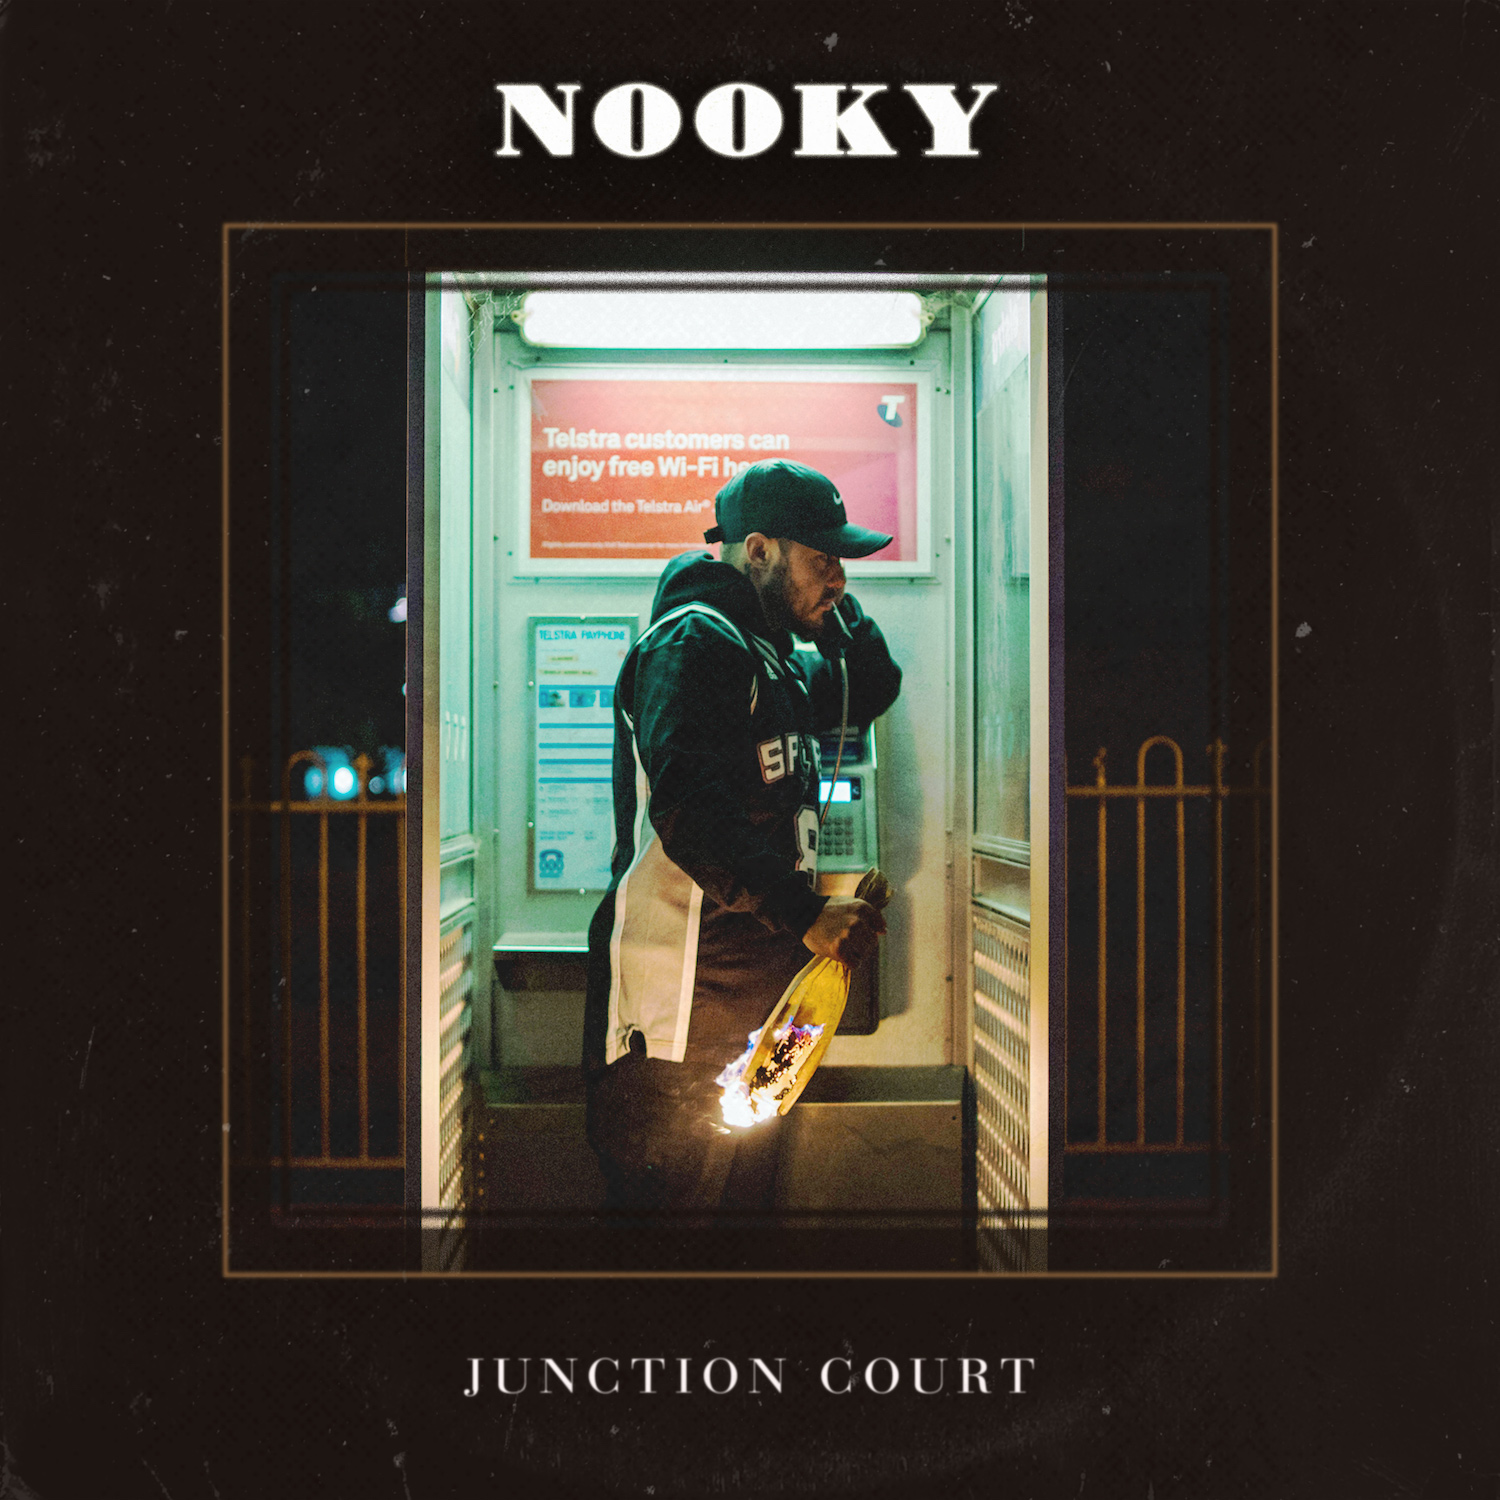 NOOKY DROPS DEBUT EP 'JUNCTION COURT'